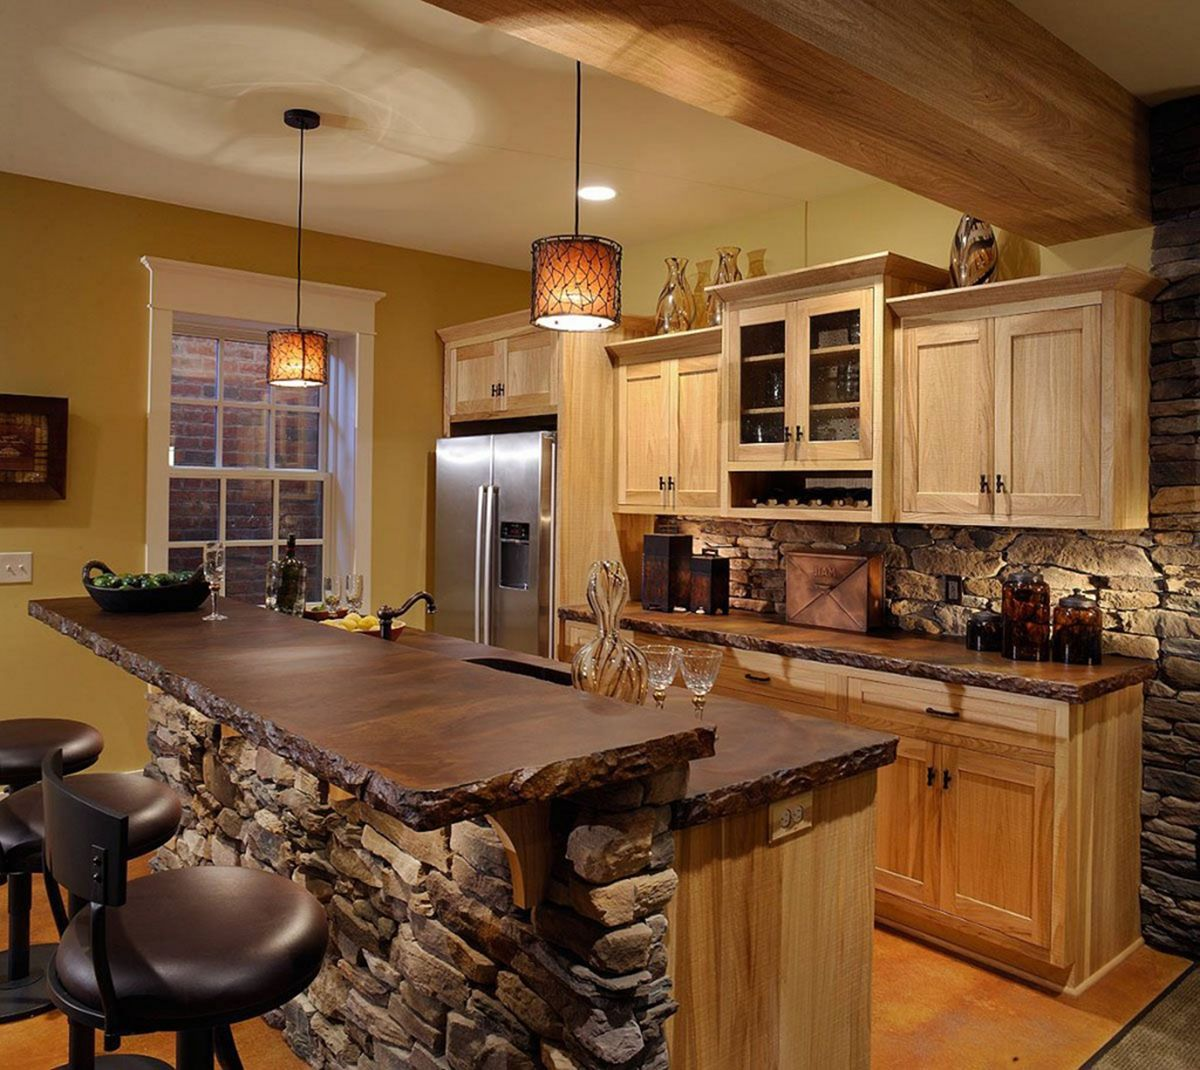 35 Gorgeous Rustic Kitchen Designs And Decorations For ...